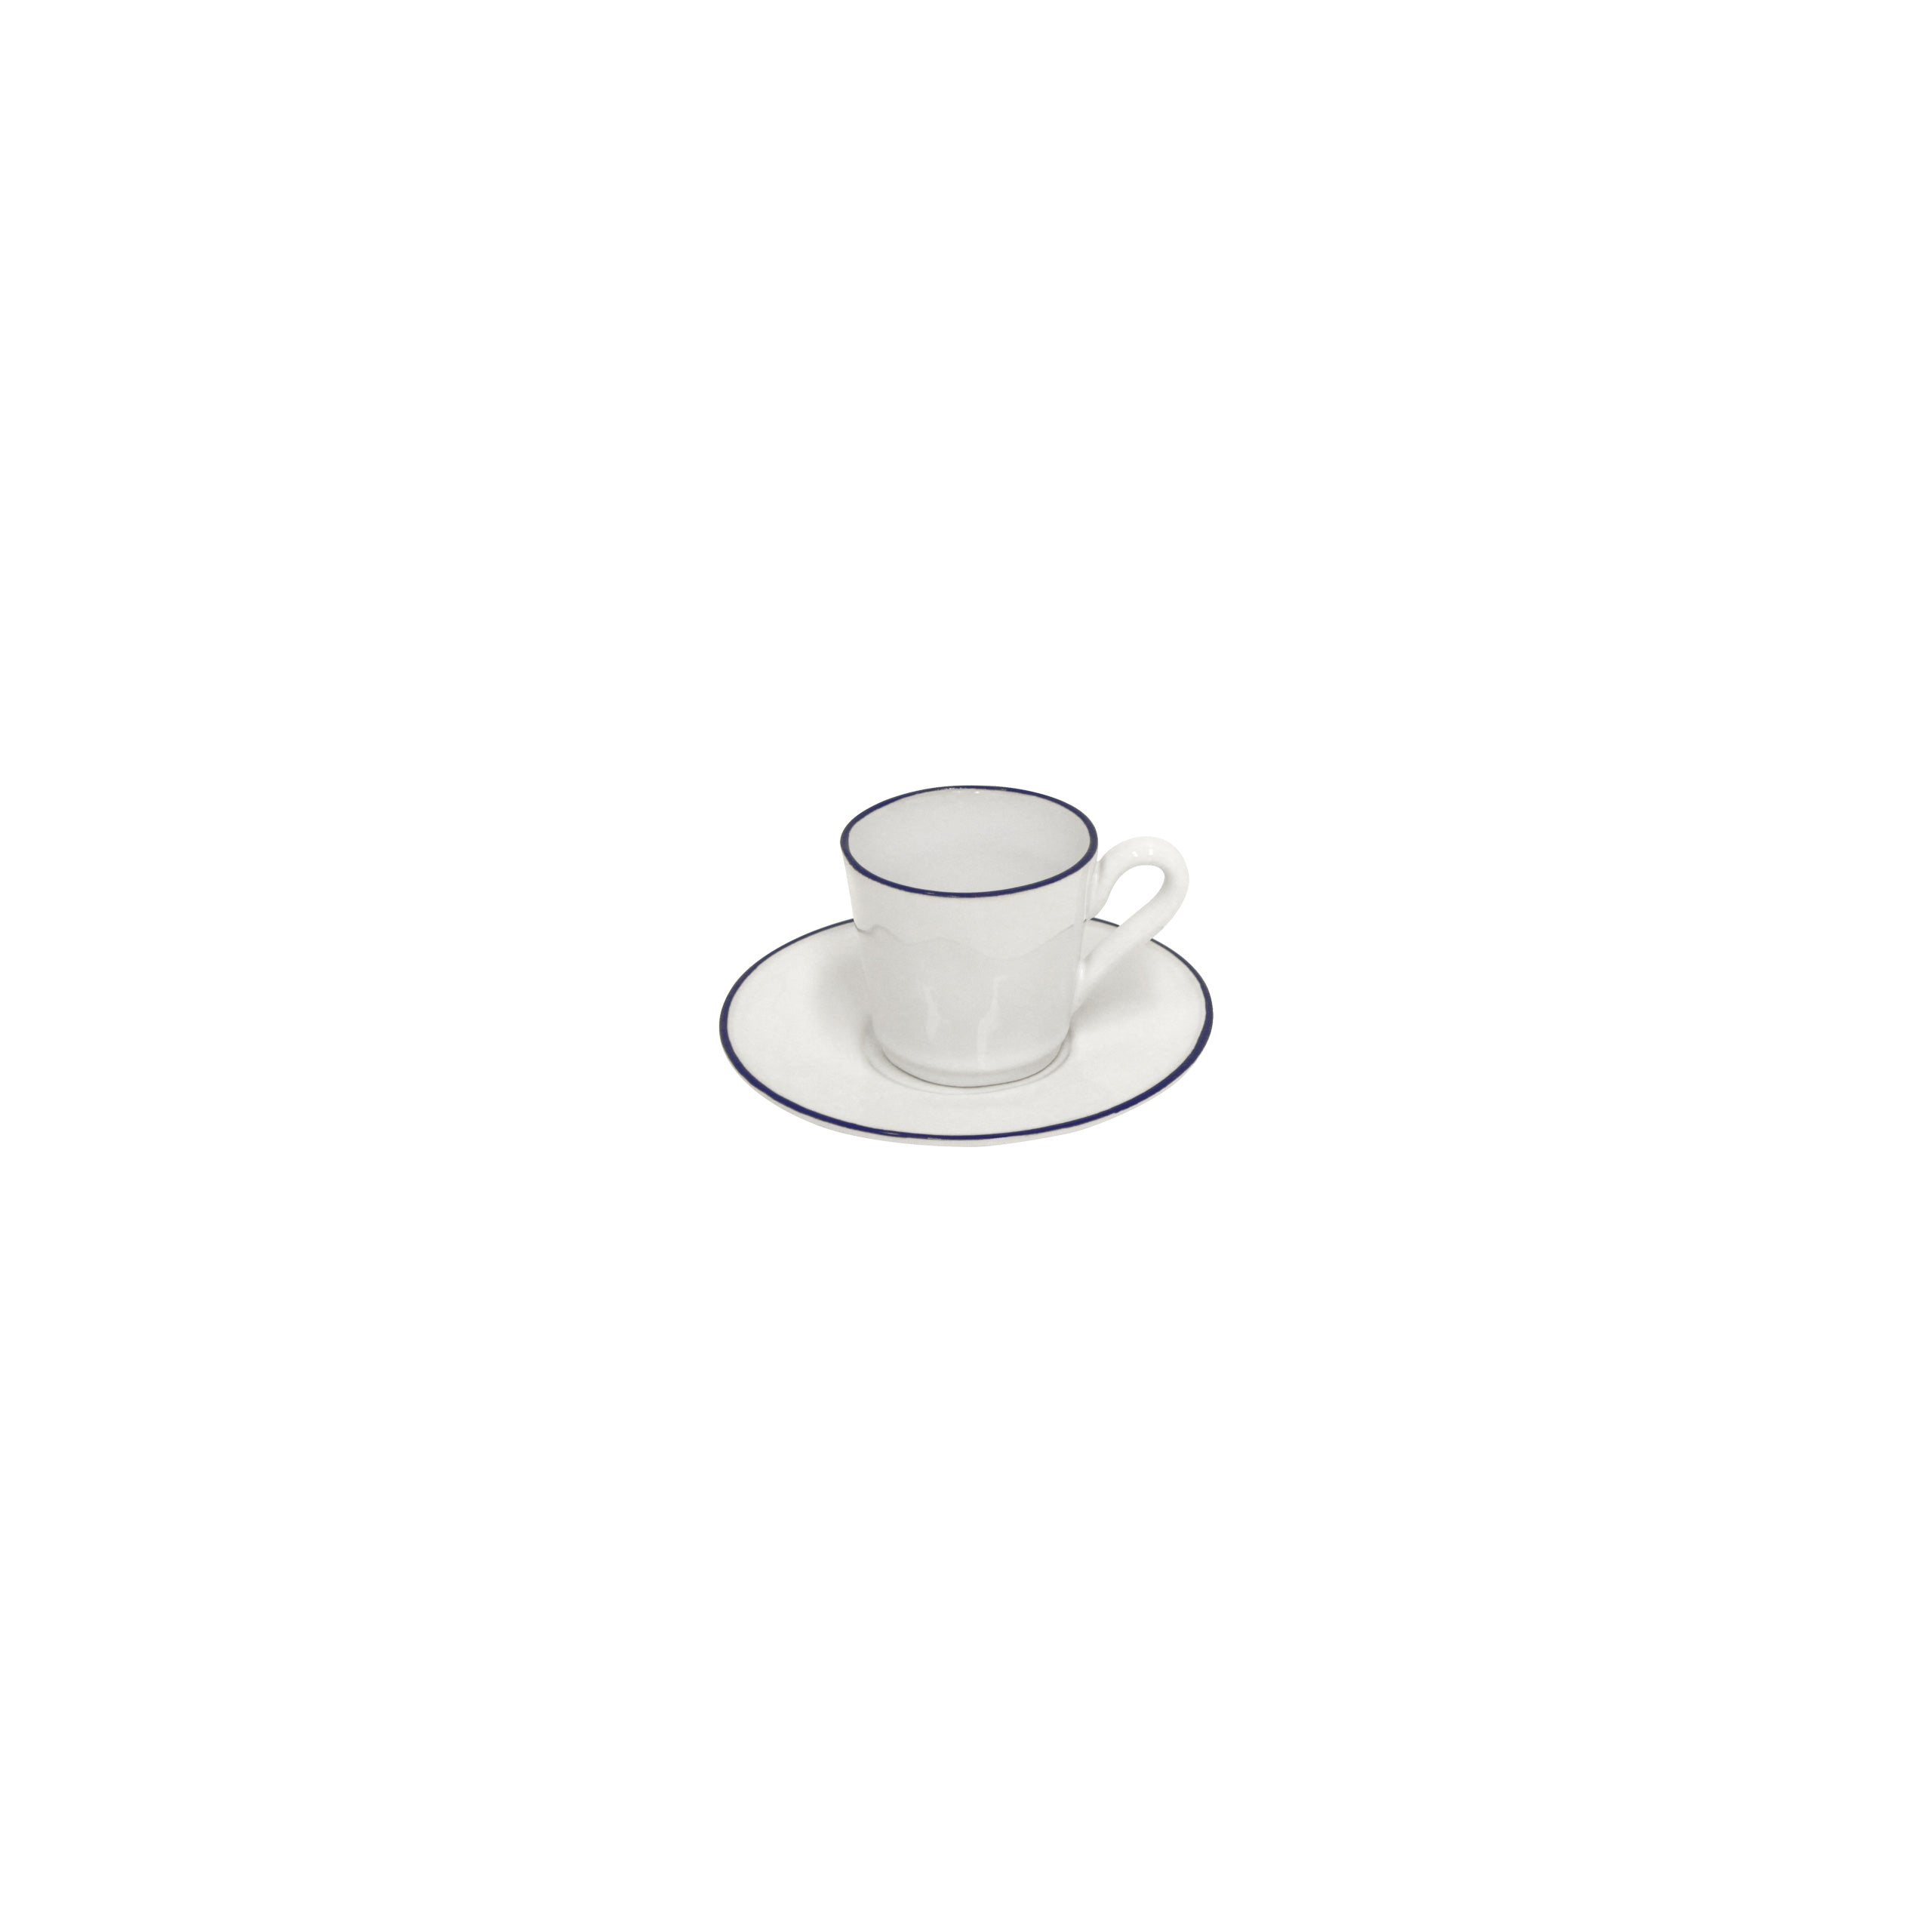 Beja White/blue Coffee Cup & Saucer set of 6